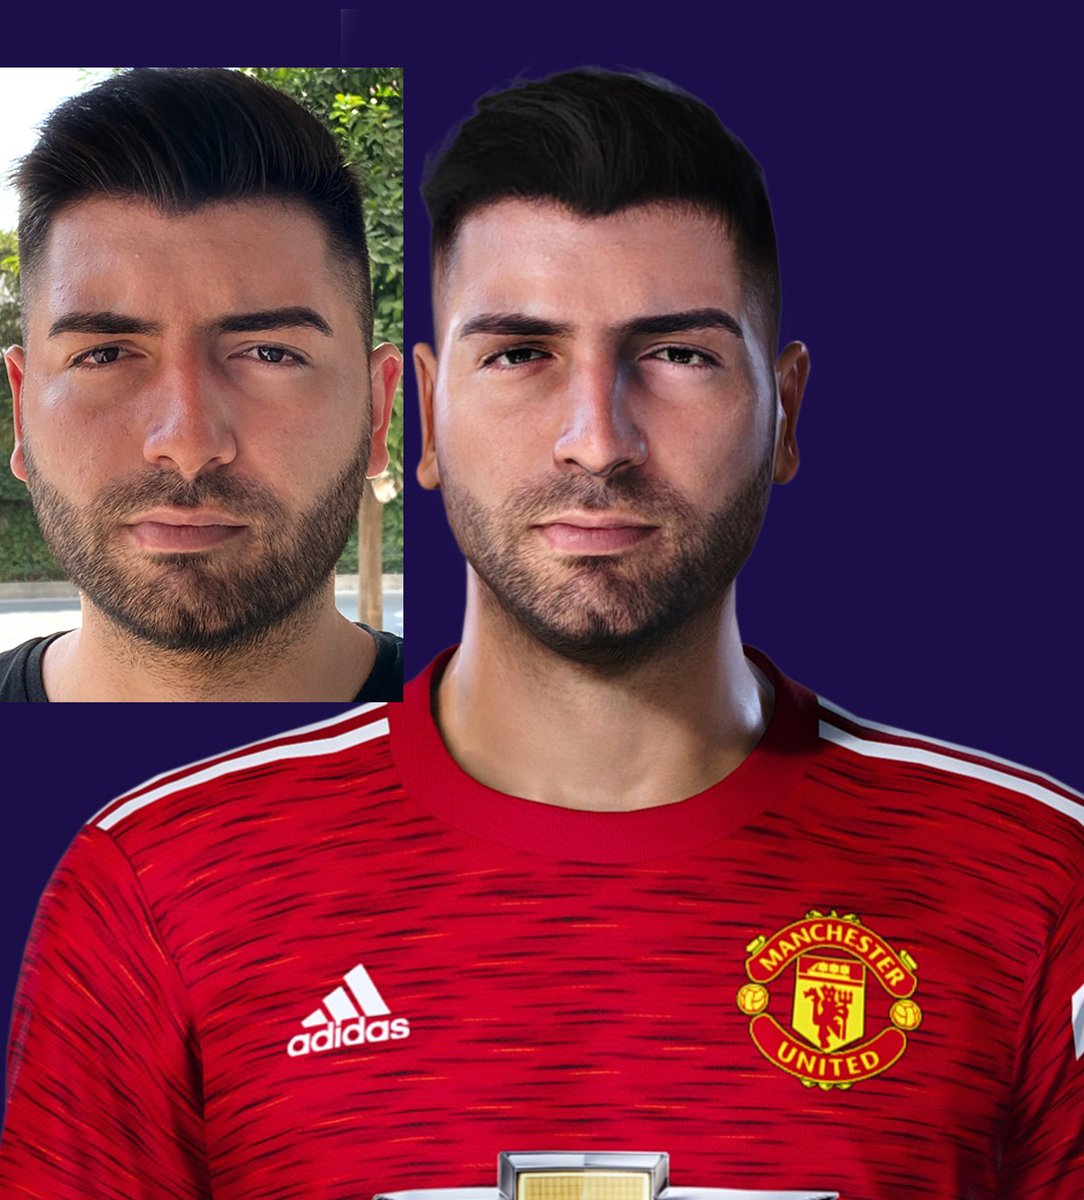 New personal face  #PES2021  @GokmenRest  Do you want to see your game face in PES? Contact me (DM) #eFootballPES2021 #eFootballPES2020 #PES2020 #PES2019 #PES2018 https://t.co/9hT7zv9nfc